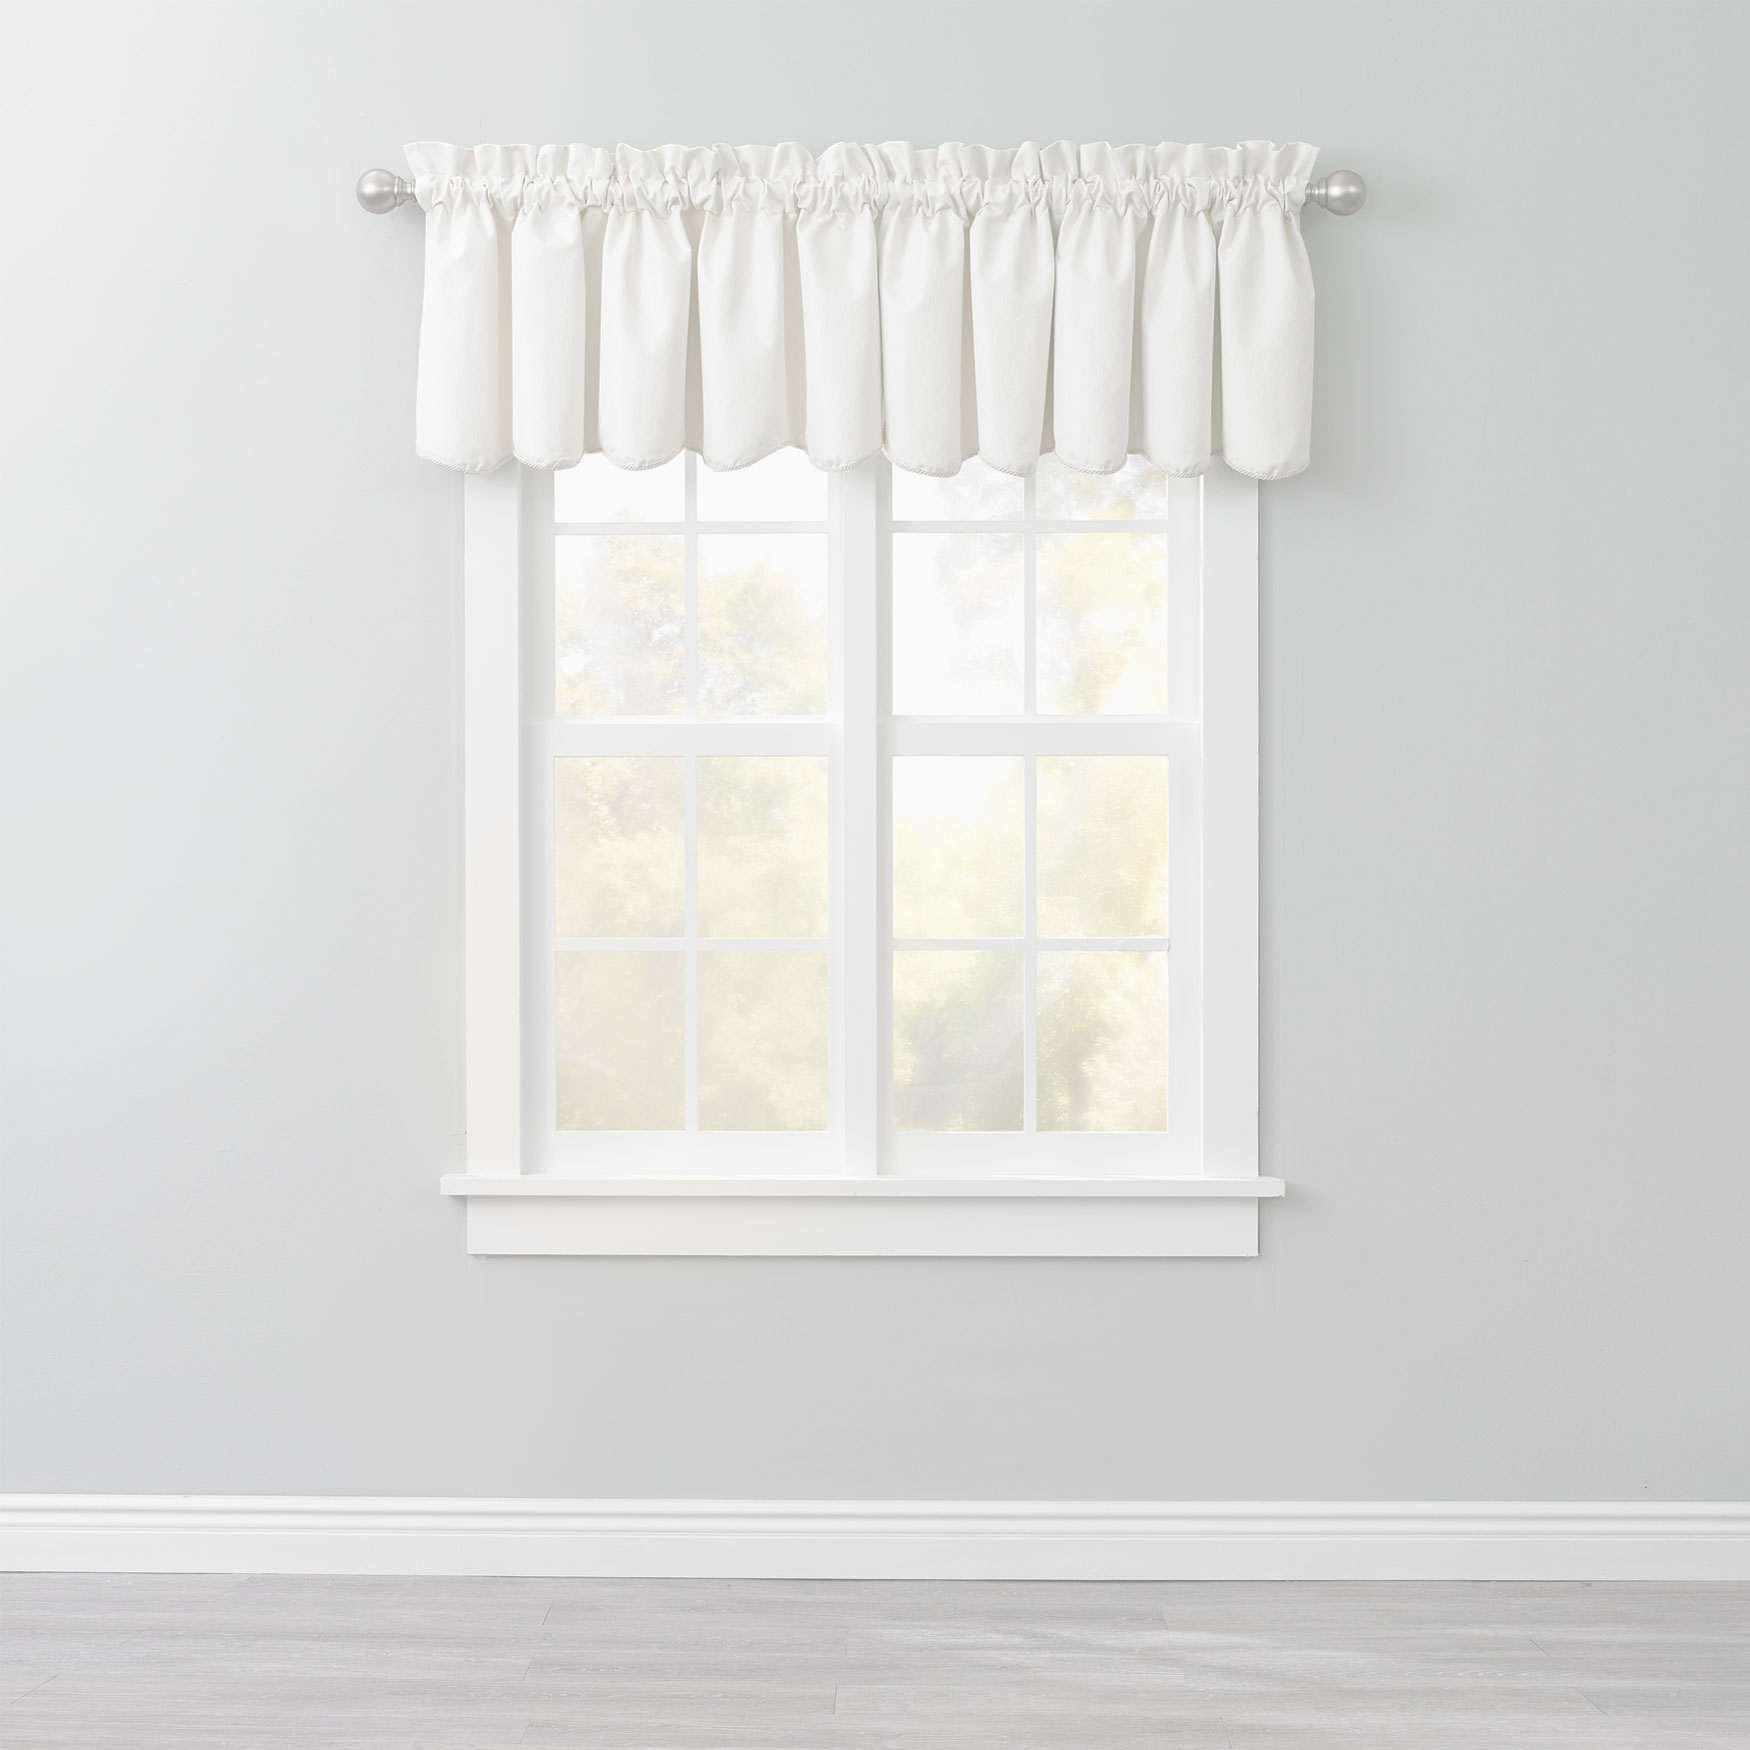 Charlotte Thermal Rod-Pocket Valance,